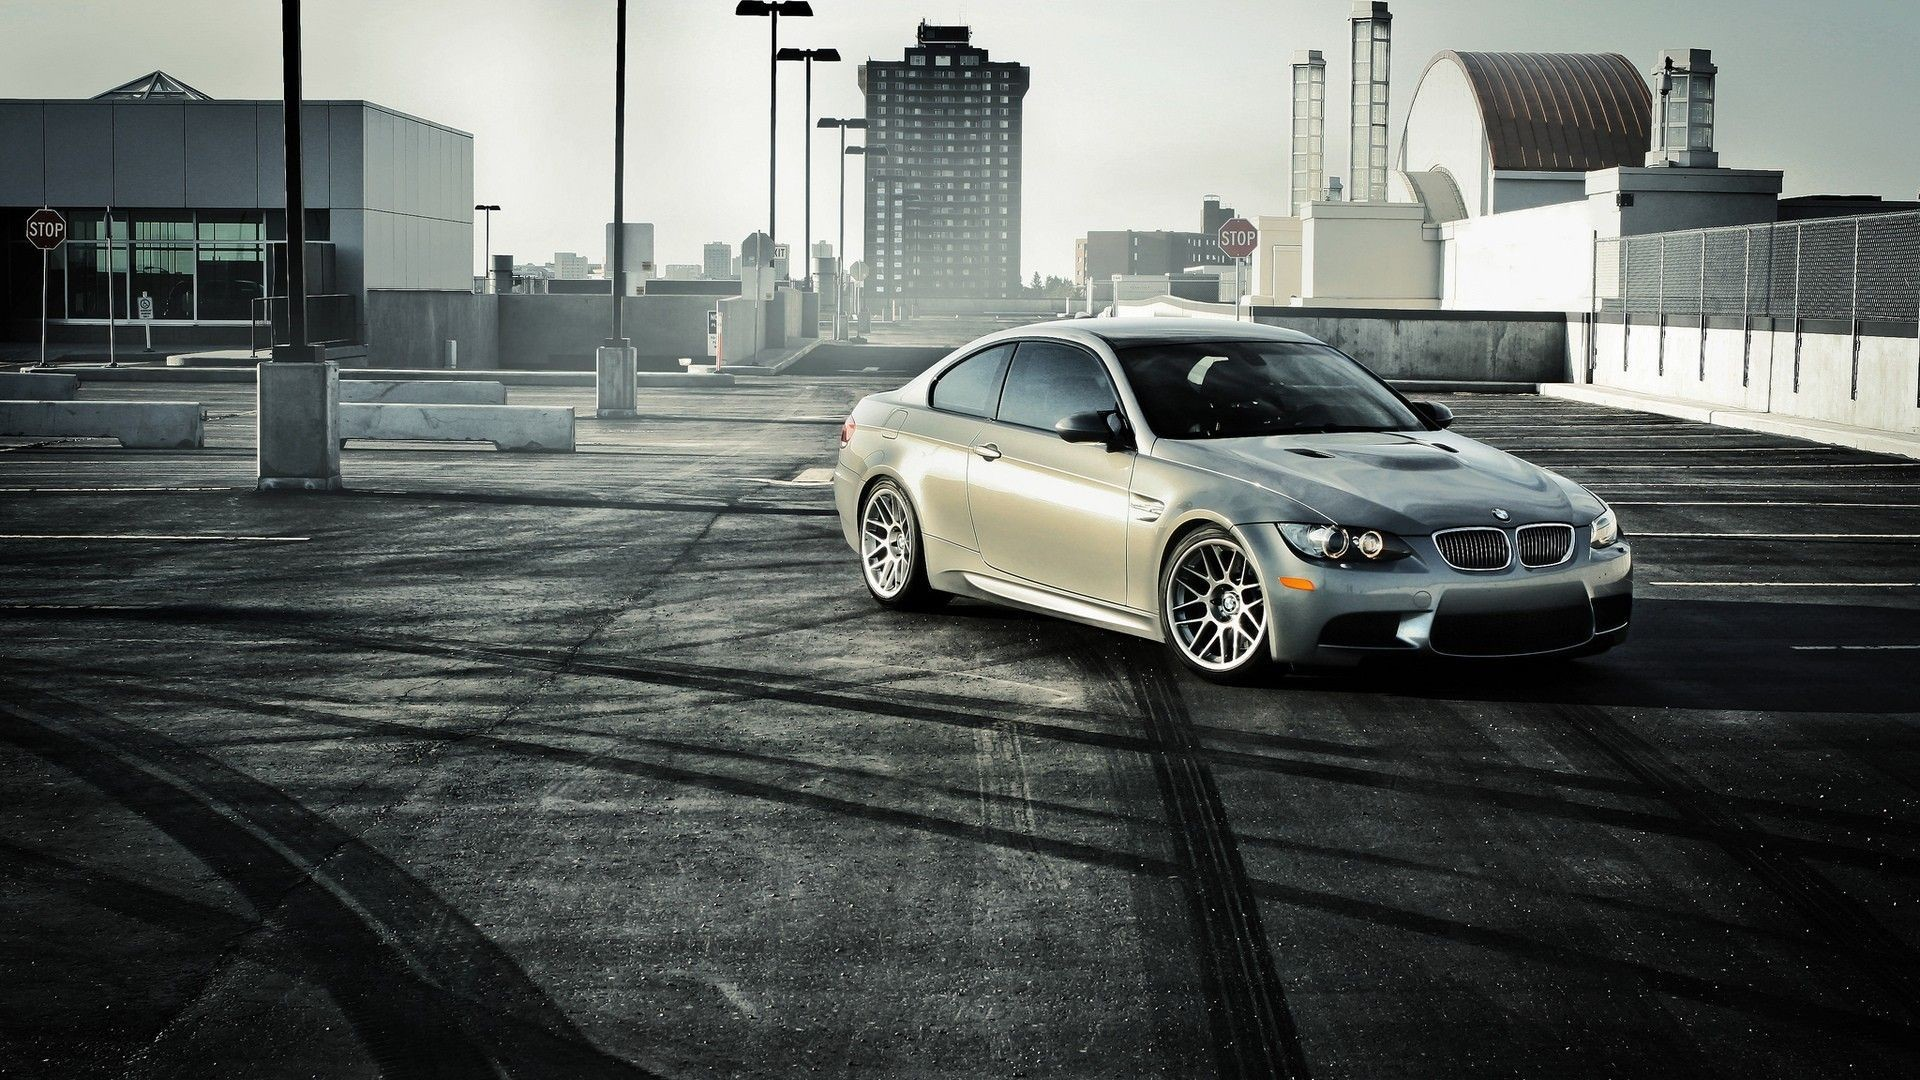 bmw m3 wallpapers (76+ images)